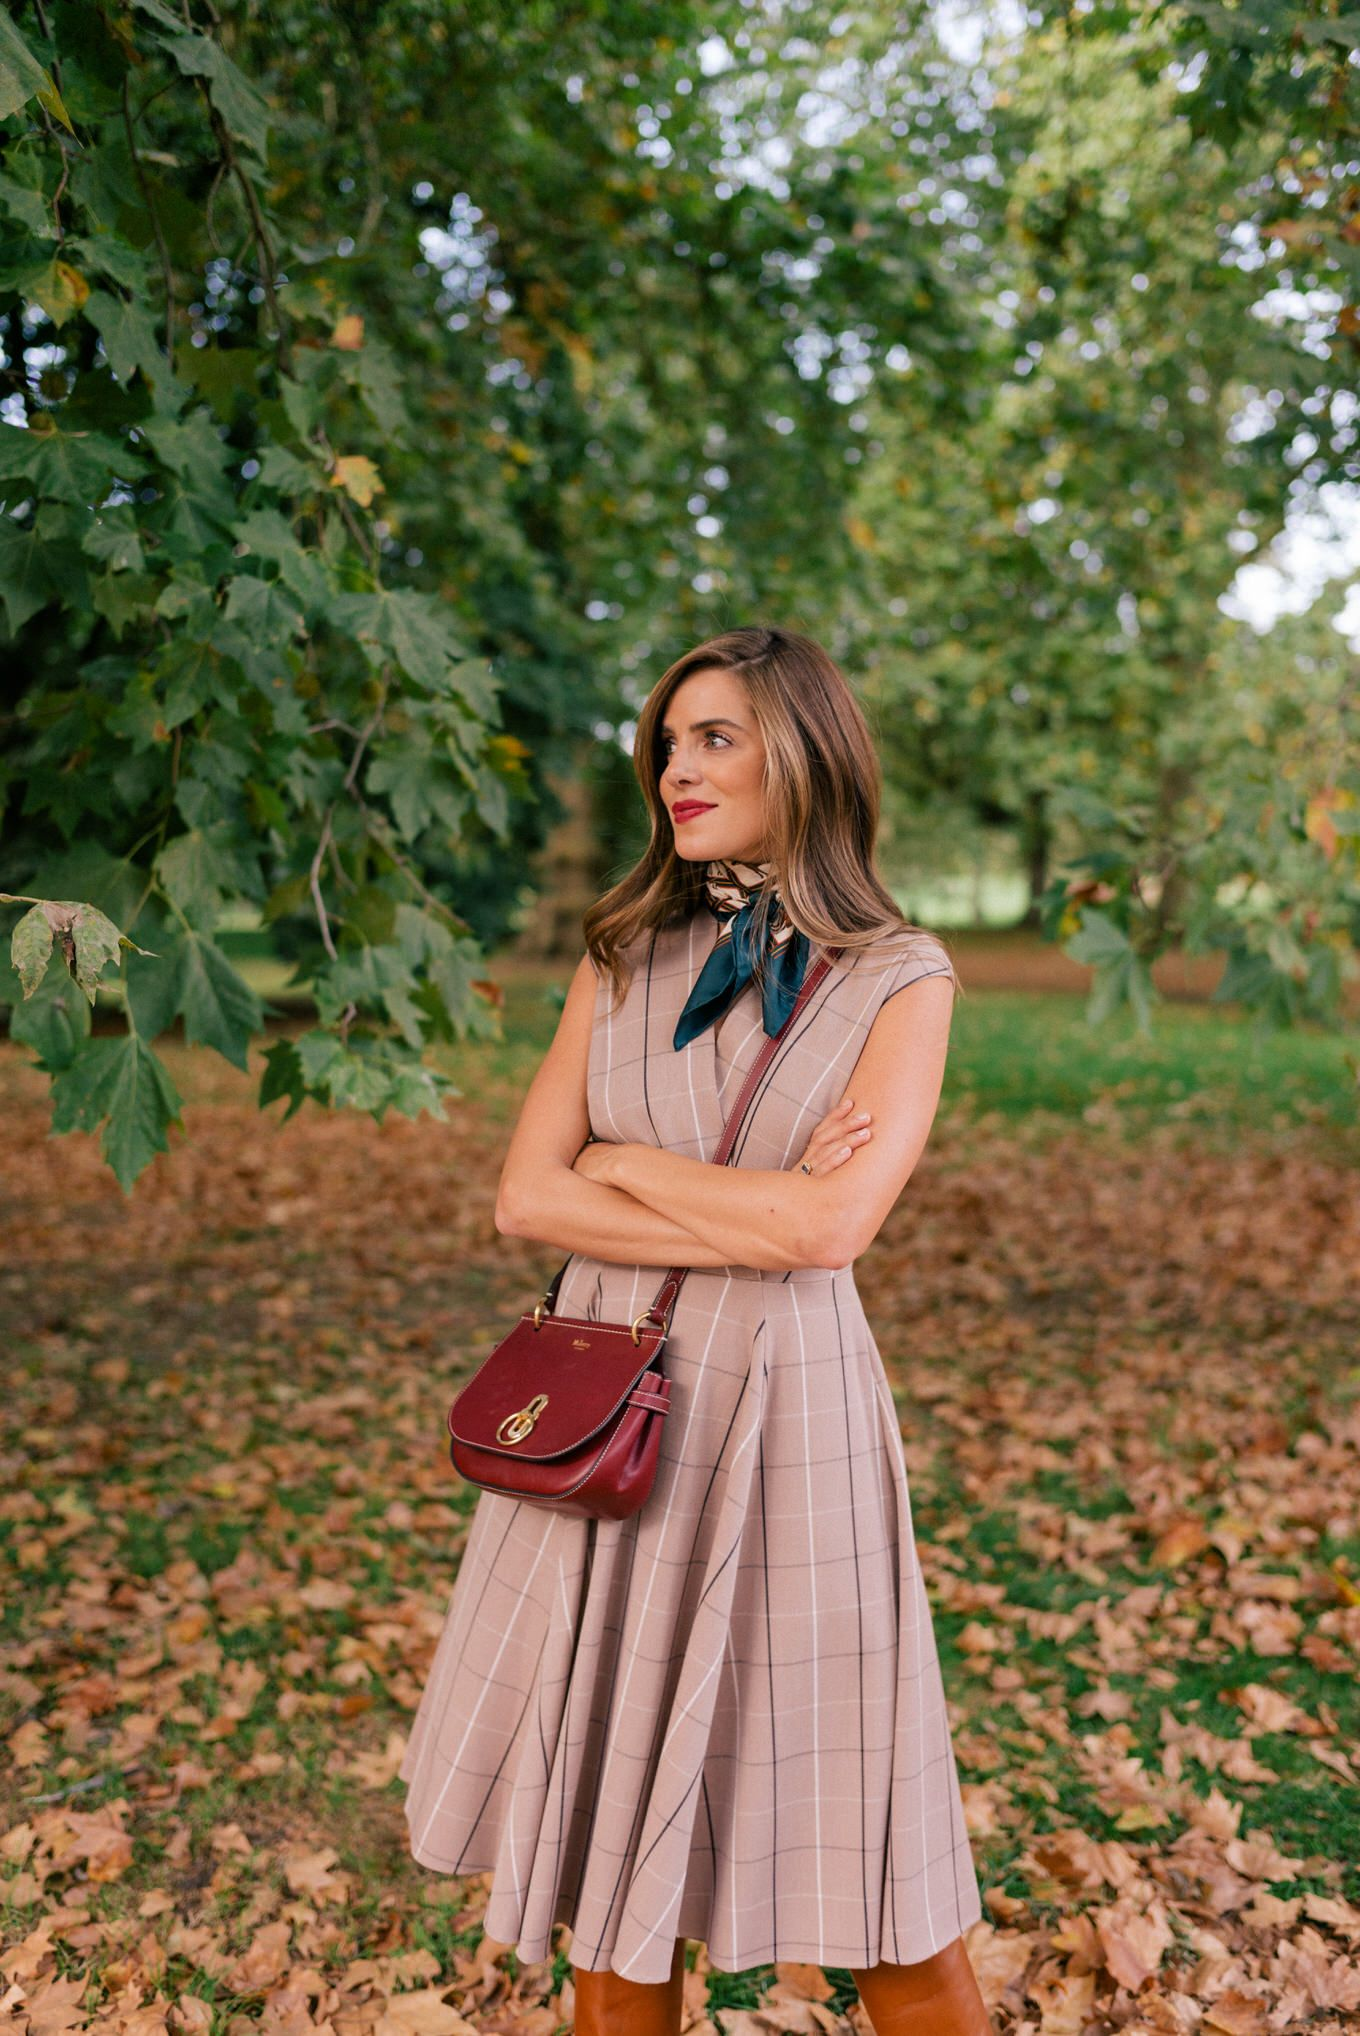 441796c802 3 Items To Help You Style Dresses For The Fall Season | Gal Meets Glam